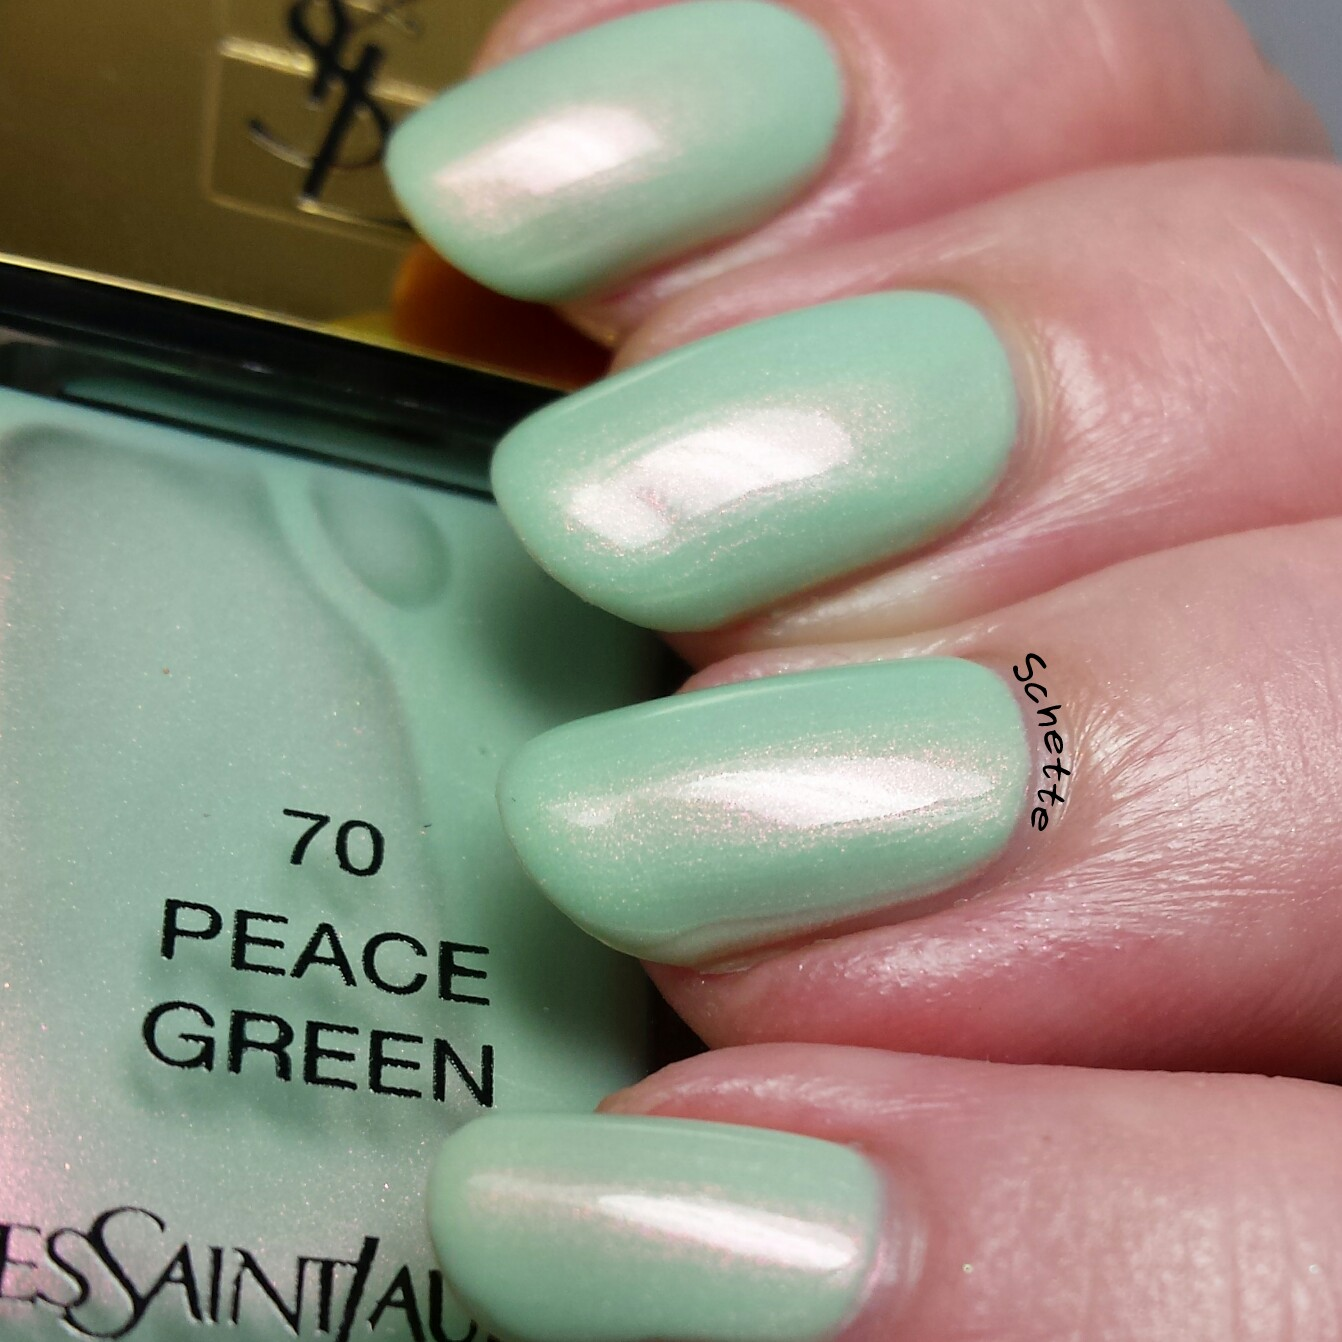 Yves Saint Laurent : Peace Green